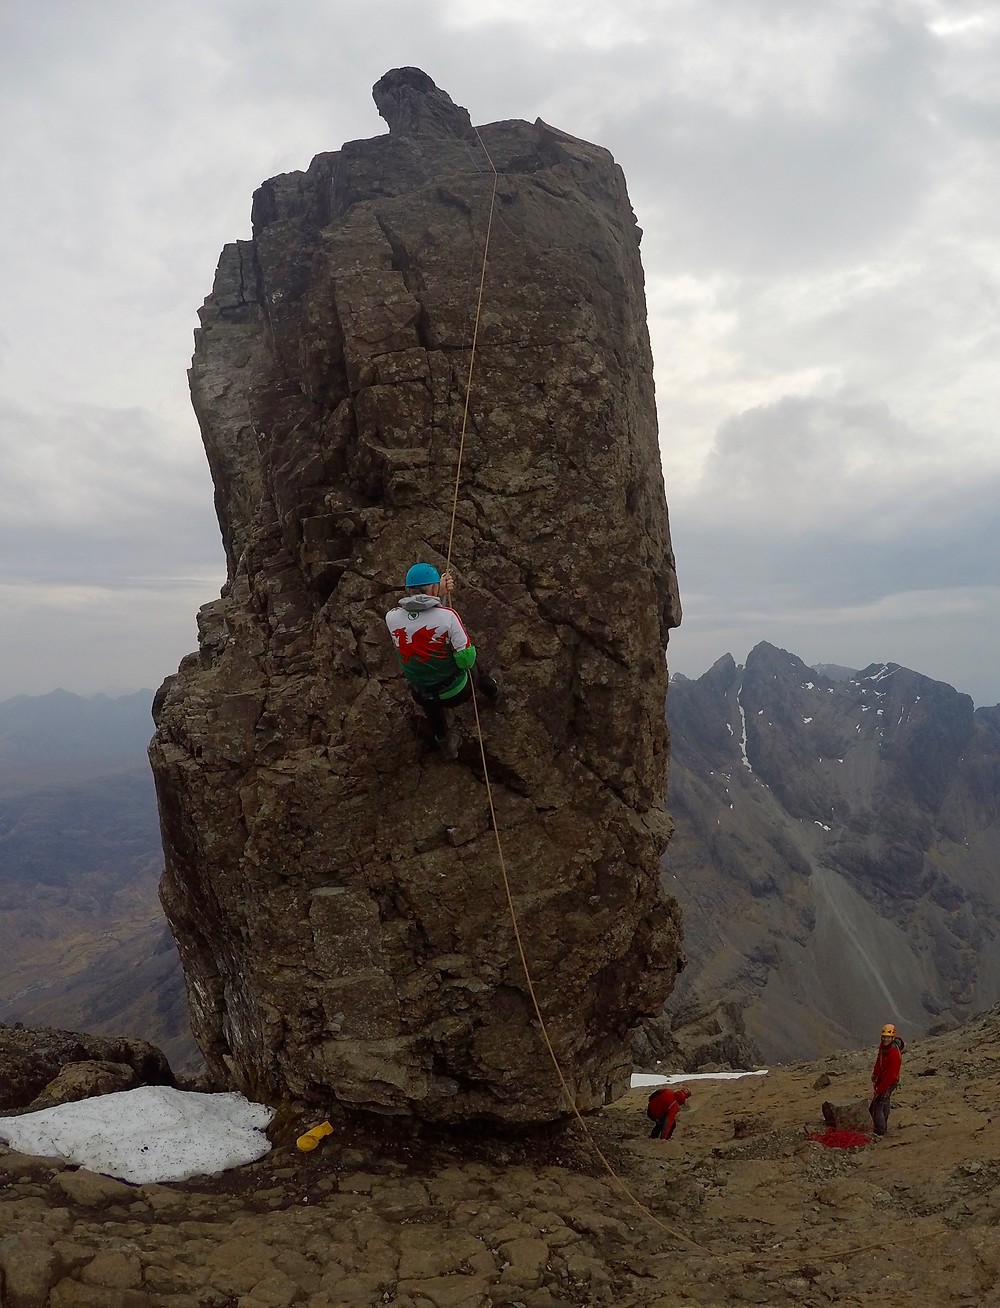 Abseiling off the In Pinn